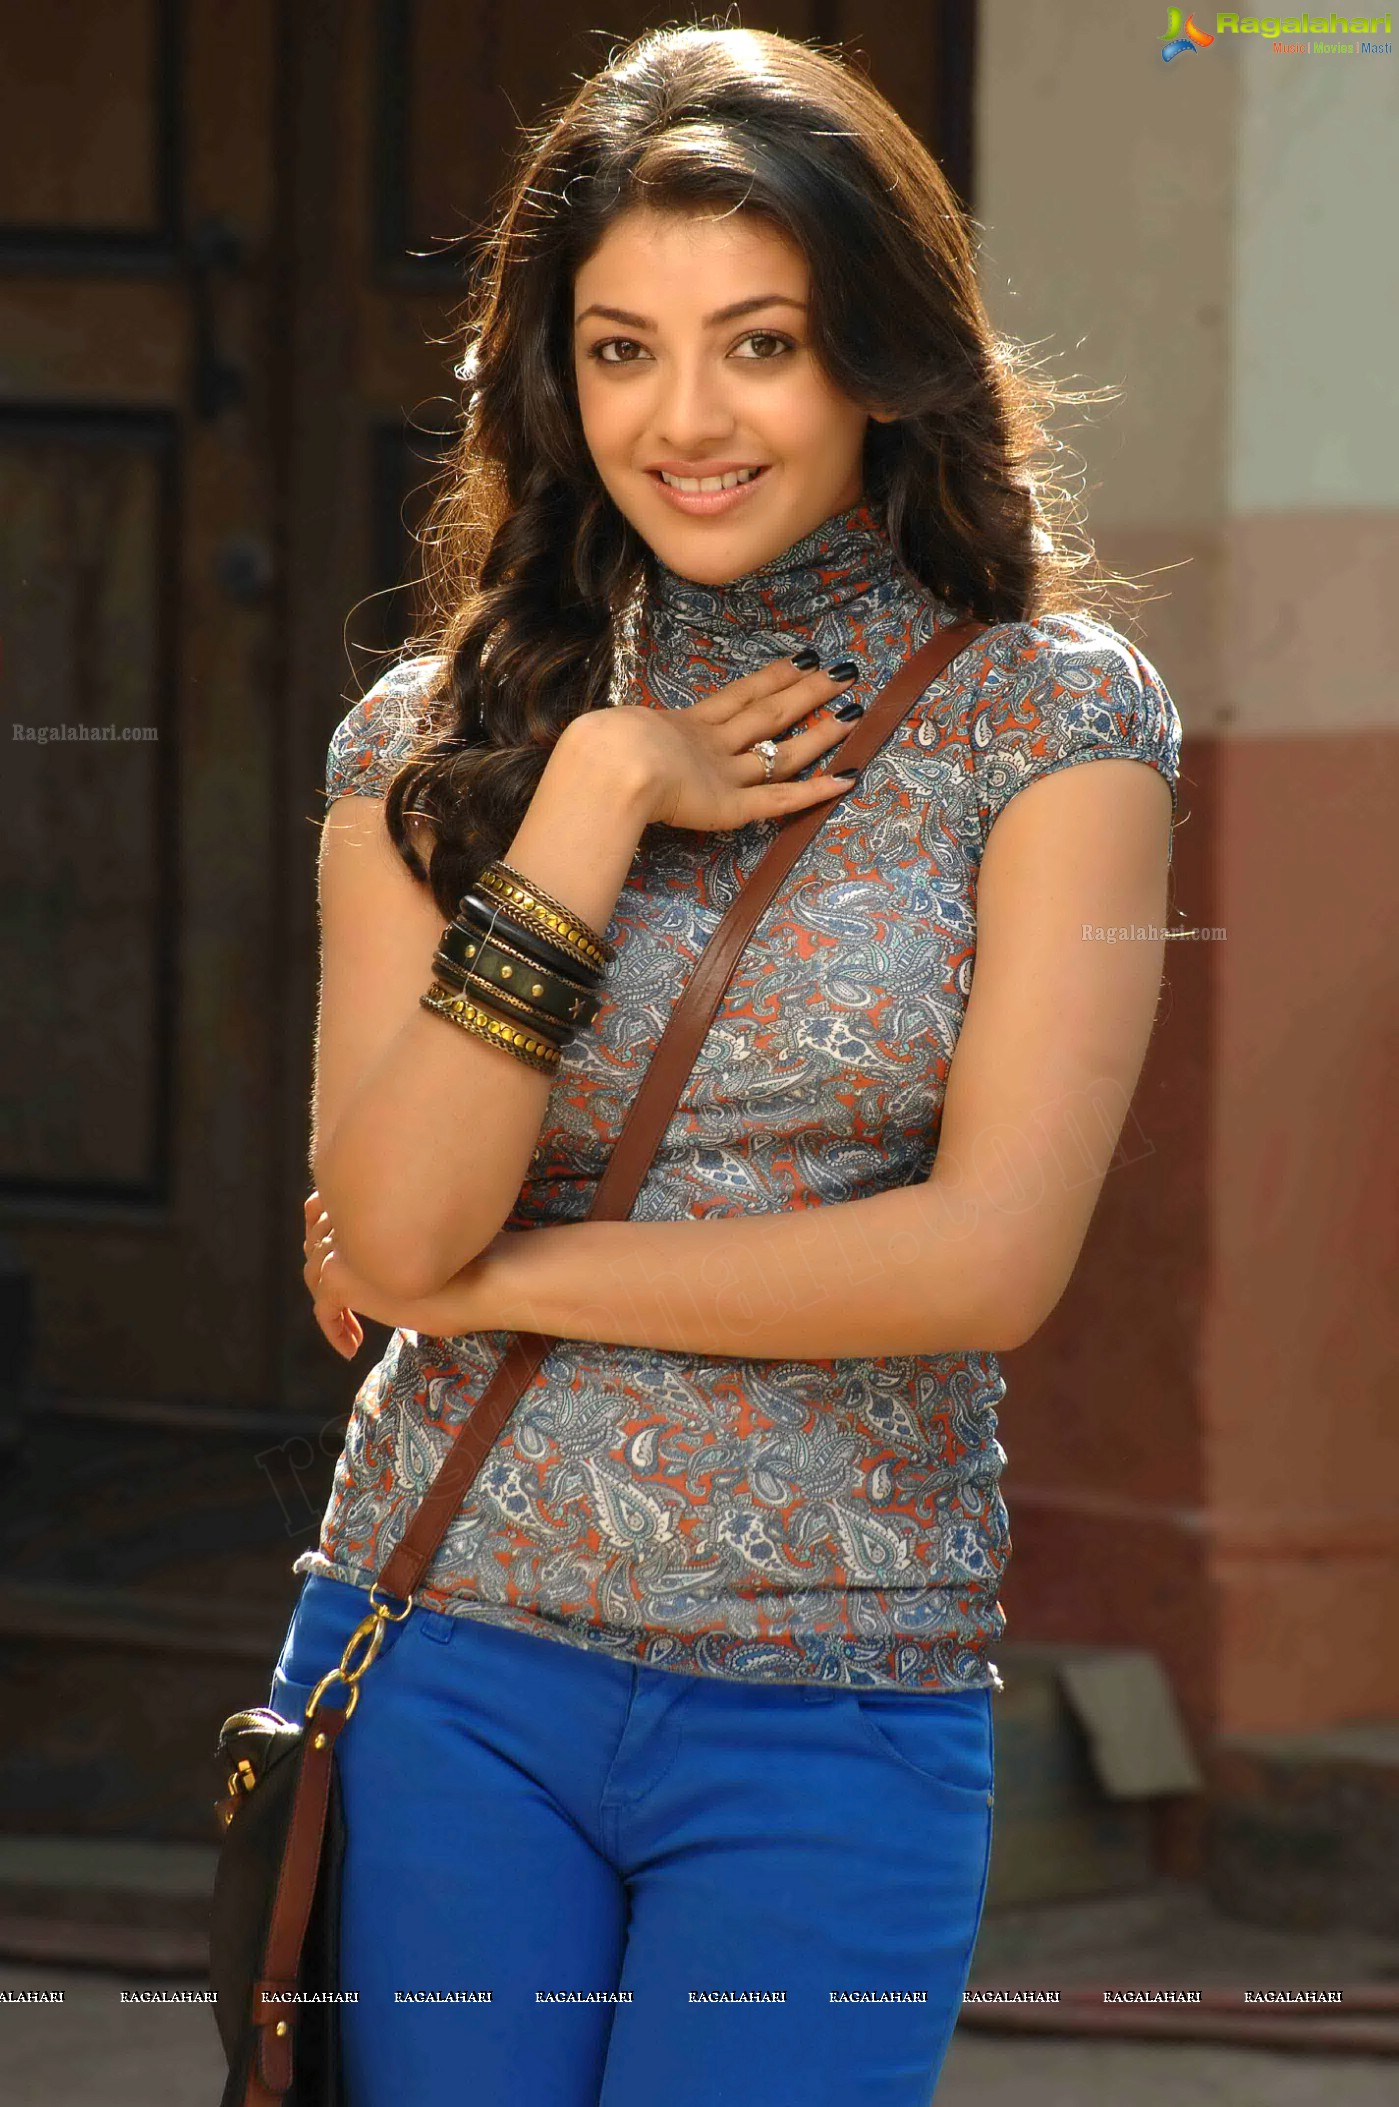 Kajal Aggarwal (Posters) Image 6 | Tollywood actress ...